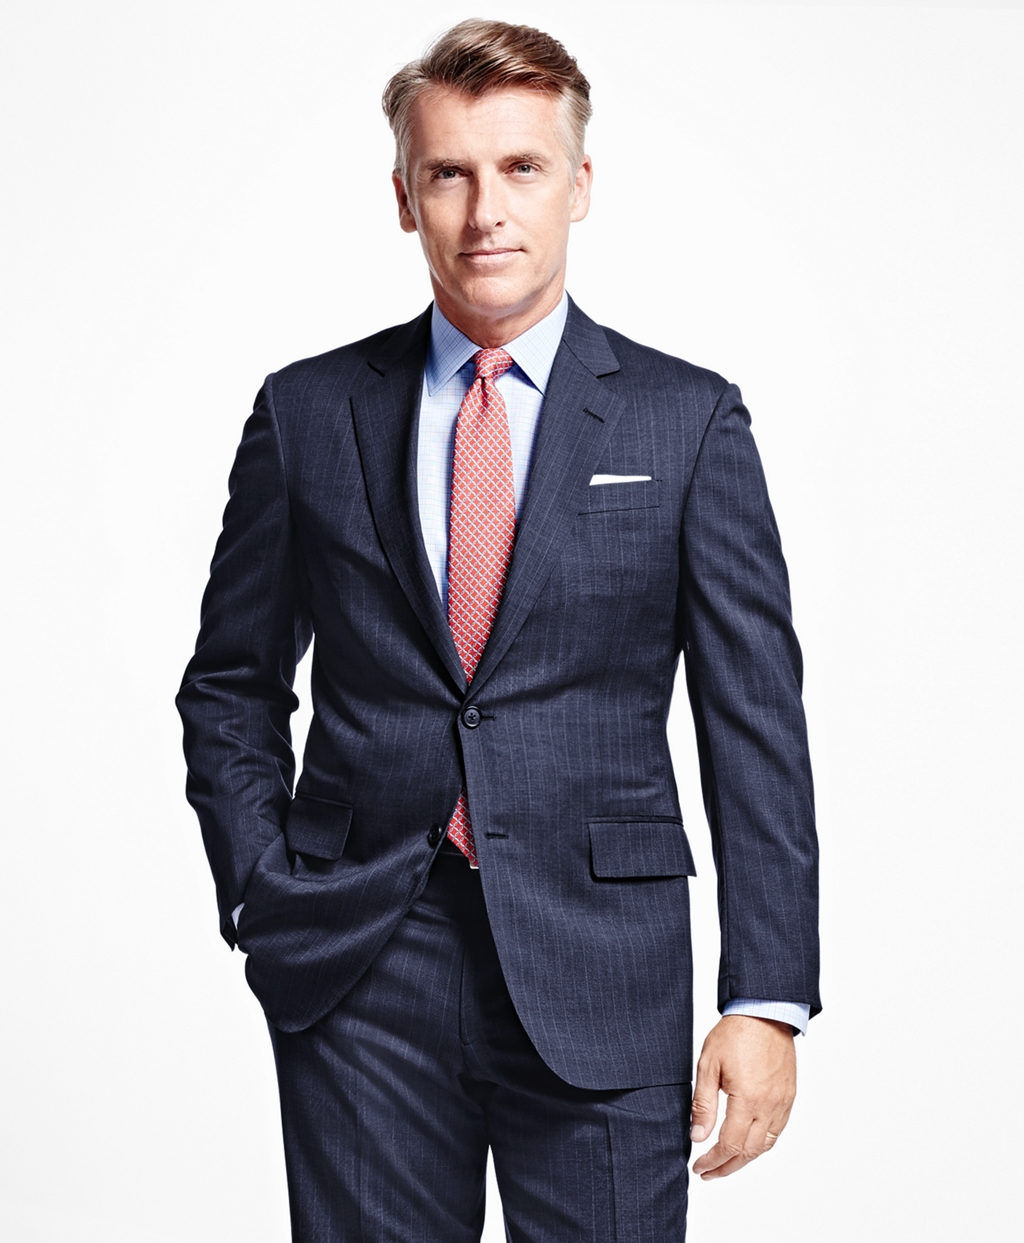 Brooks Brothers summer suits are currently 2 for $899 (Photo via Brooks Brothers)